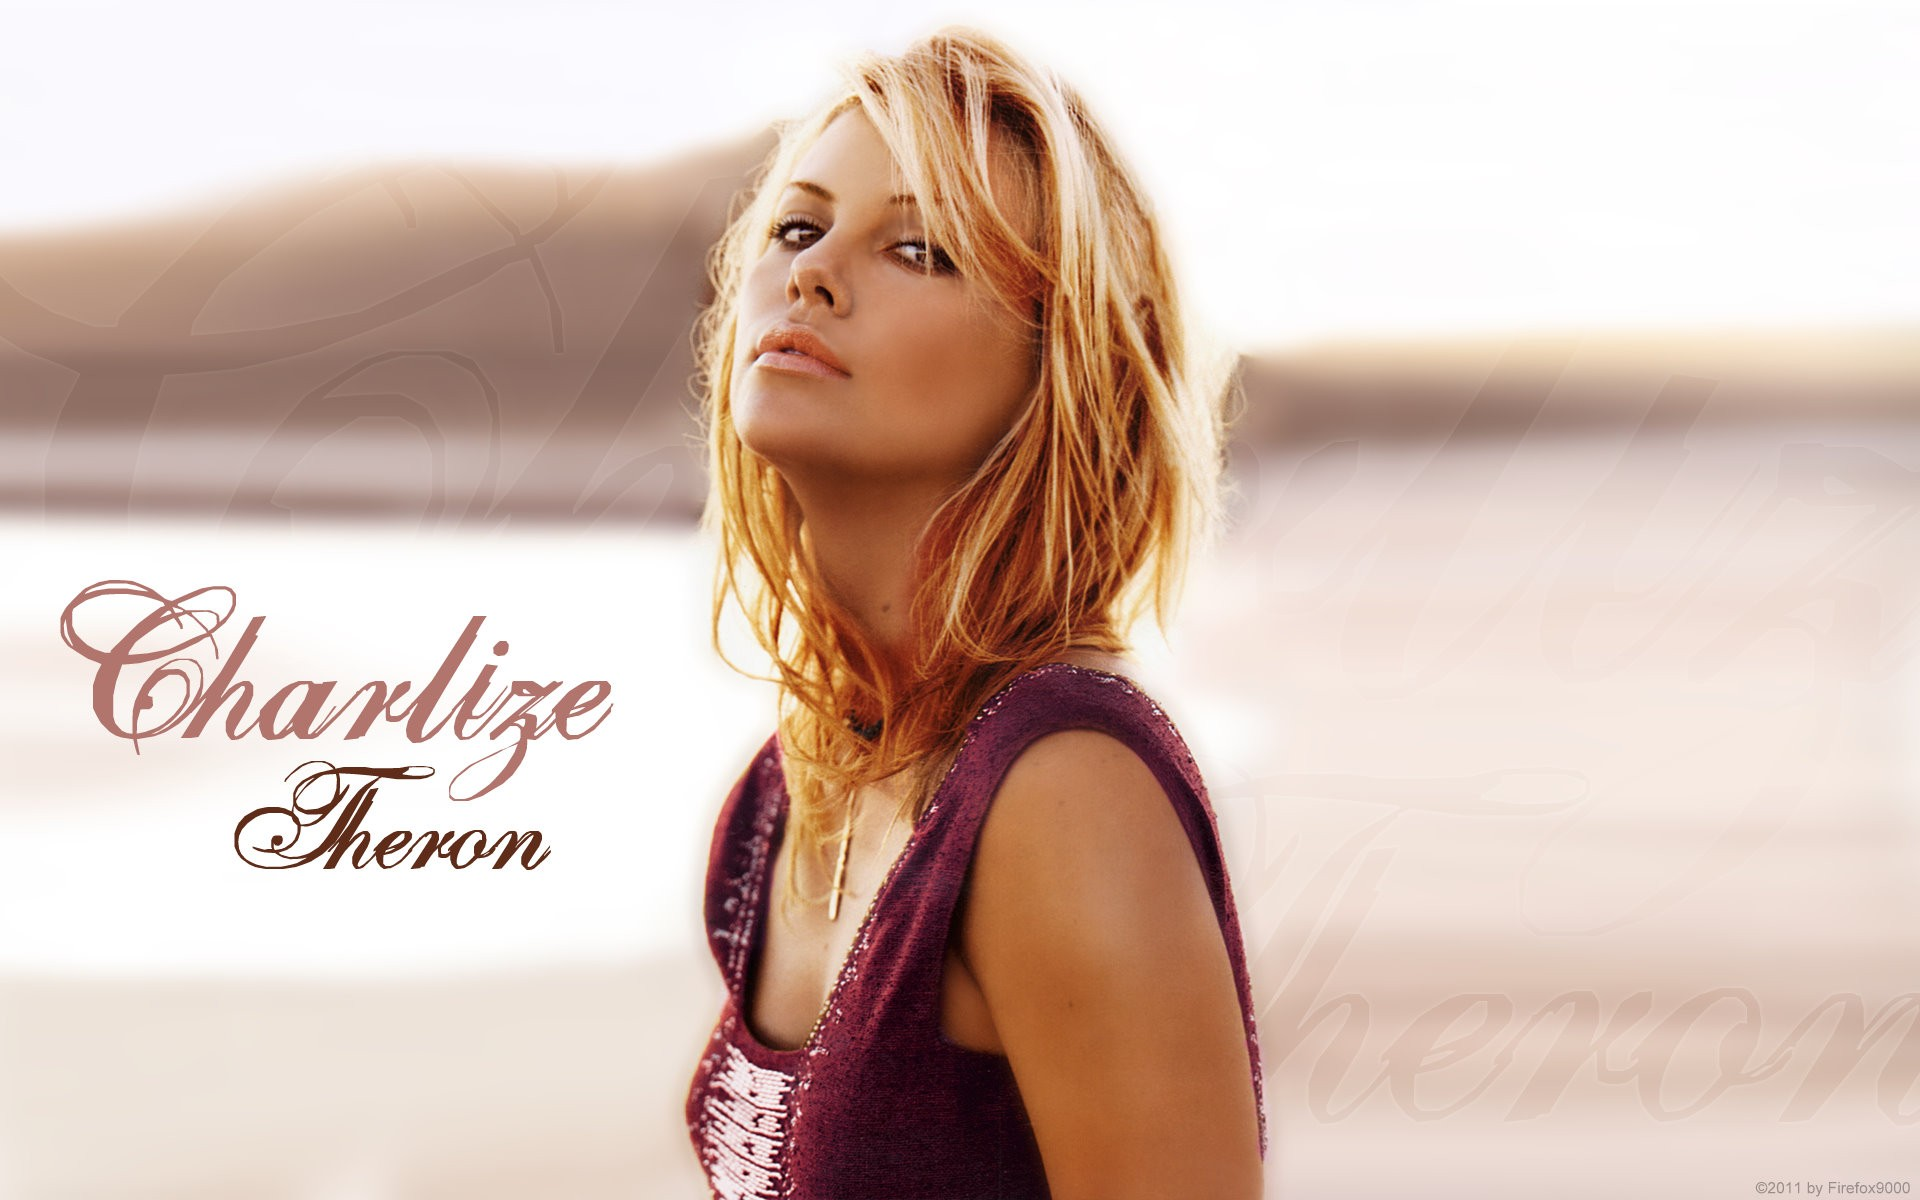 1920x1200 - Charlize Theron Wallpapers 33